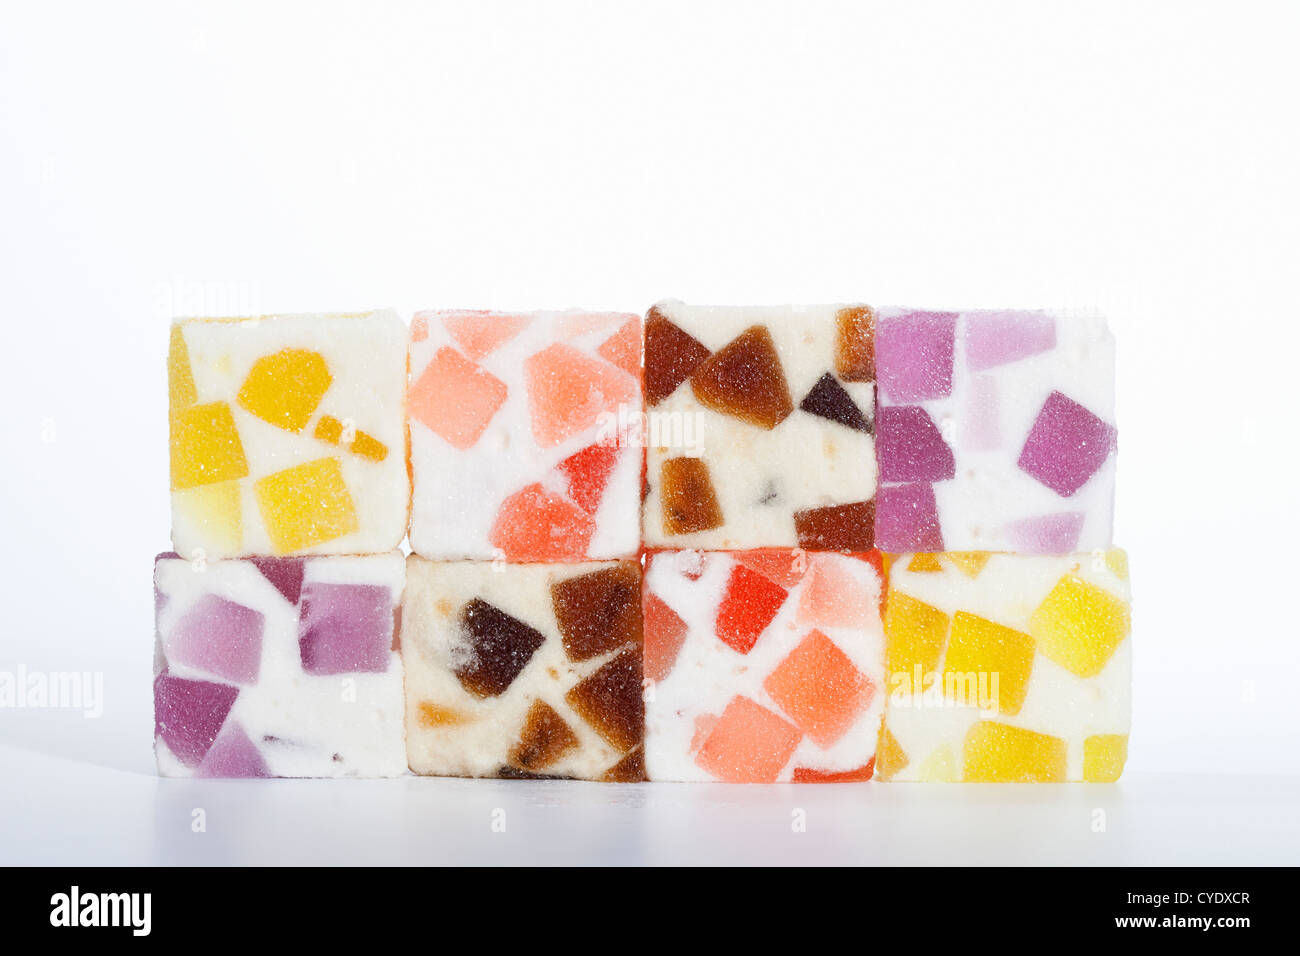 Traditional Japanese gelatin candies made from agar-agar - Stock Image